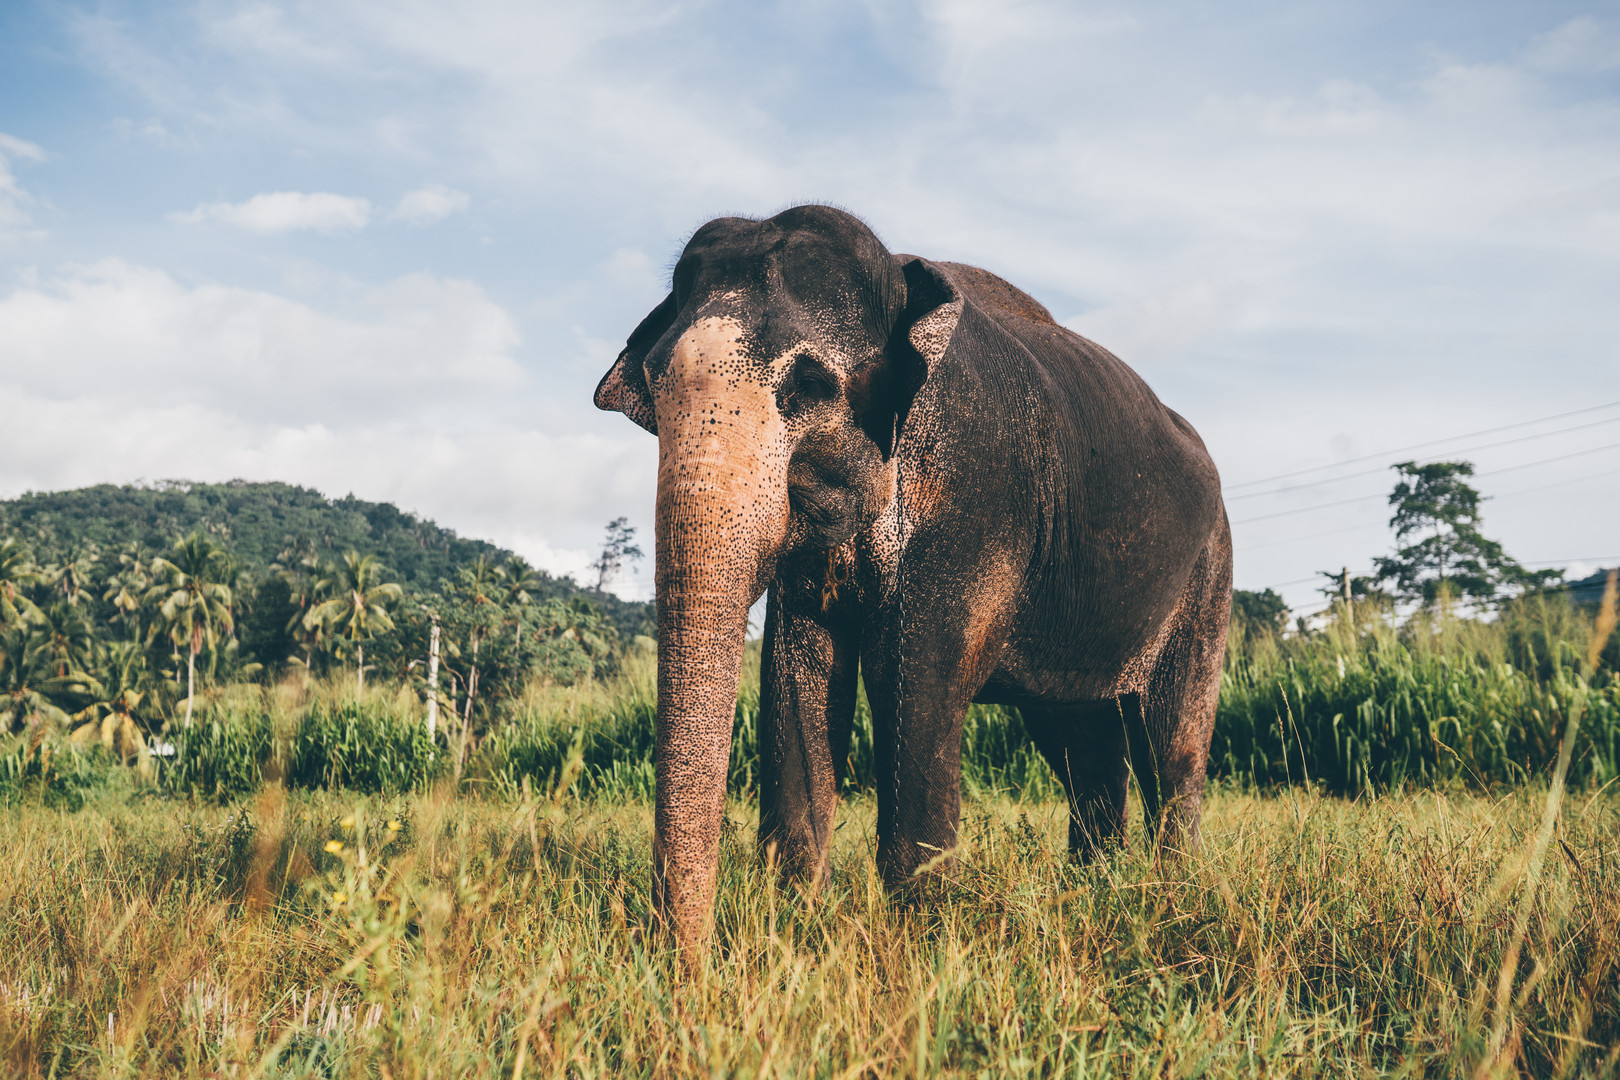 Elephant_Foundation_Sri_Lanka_2019_13.jp